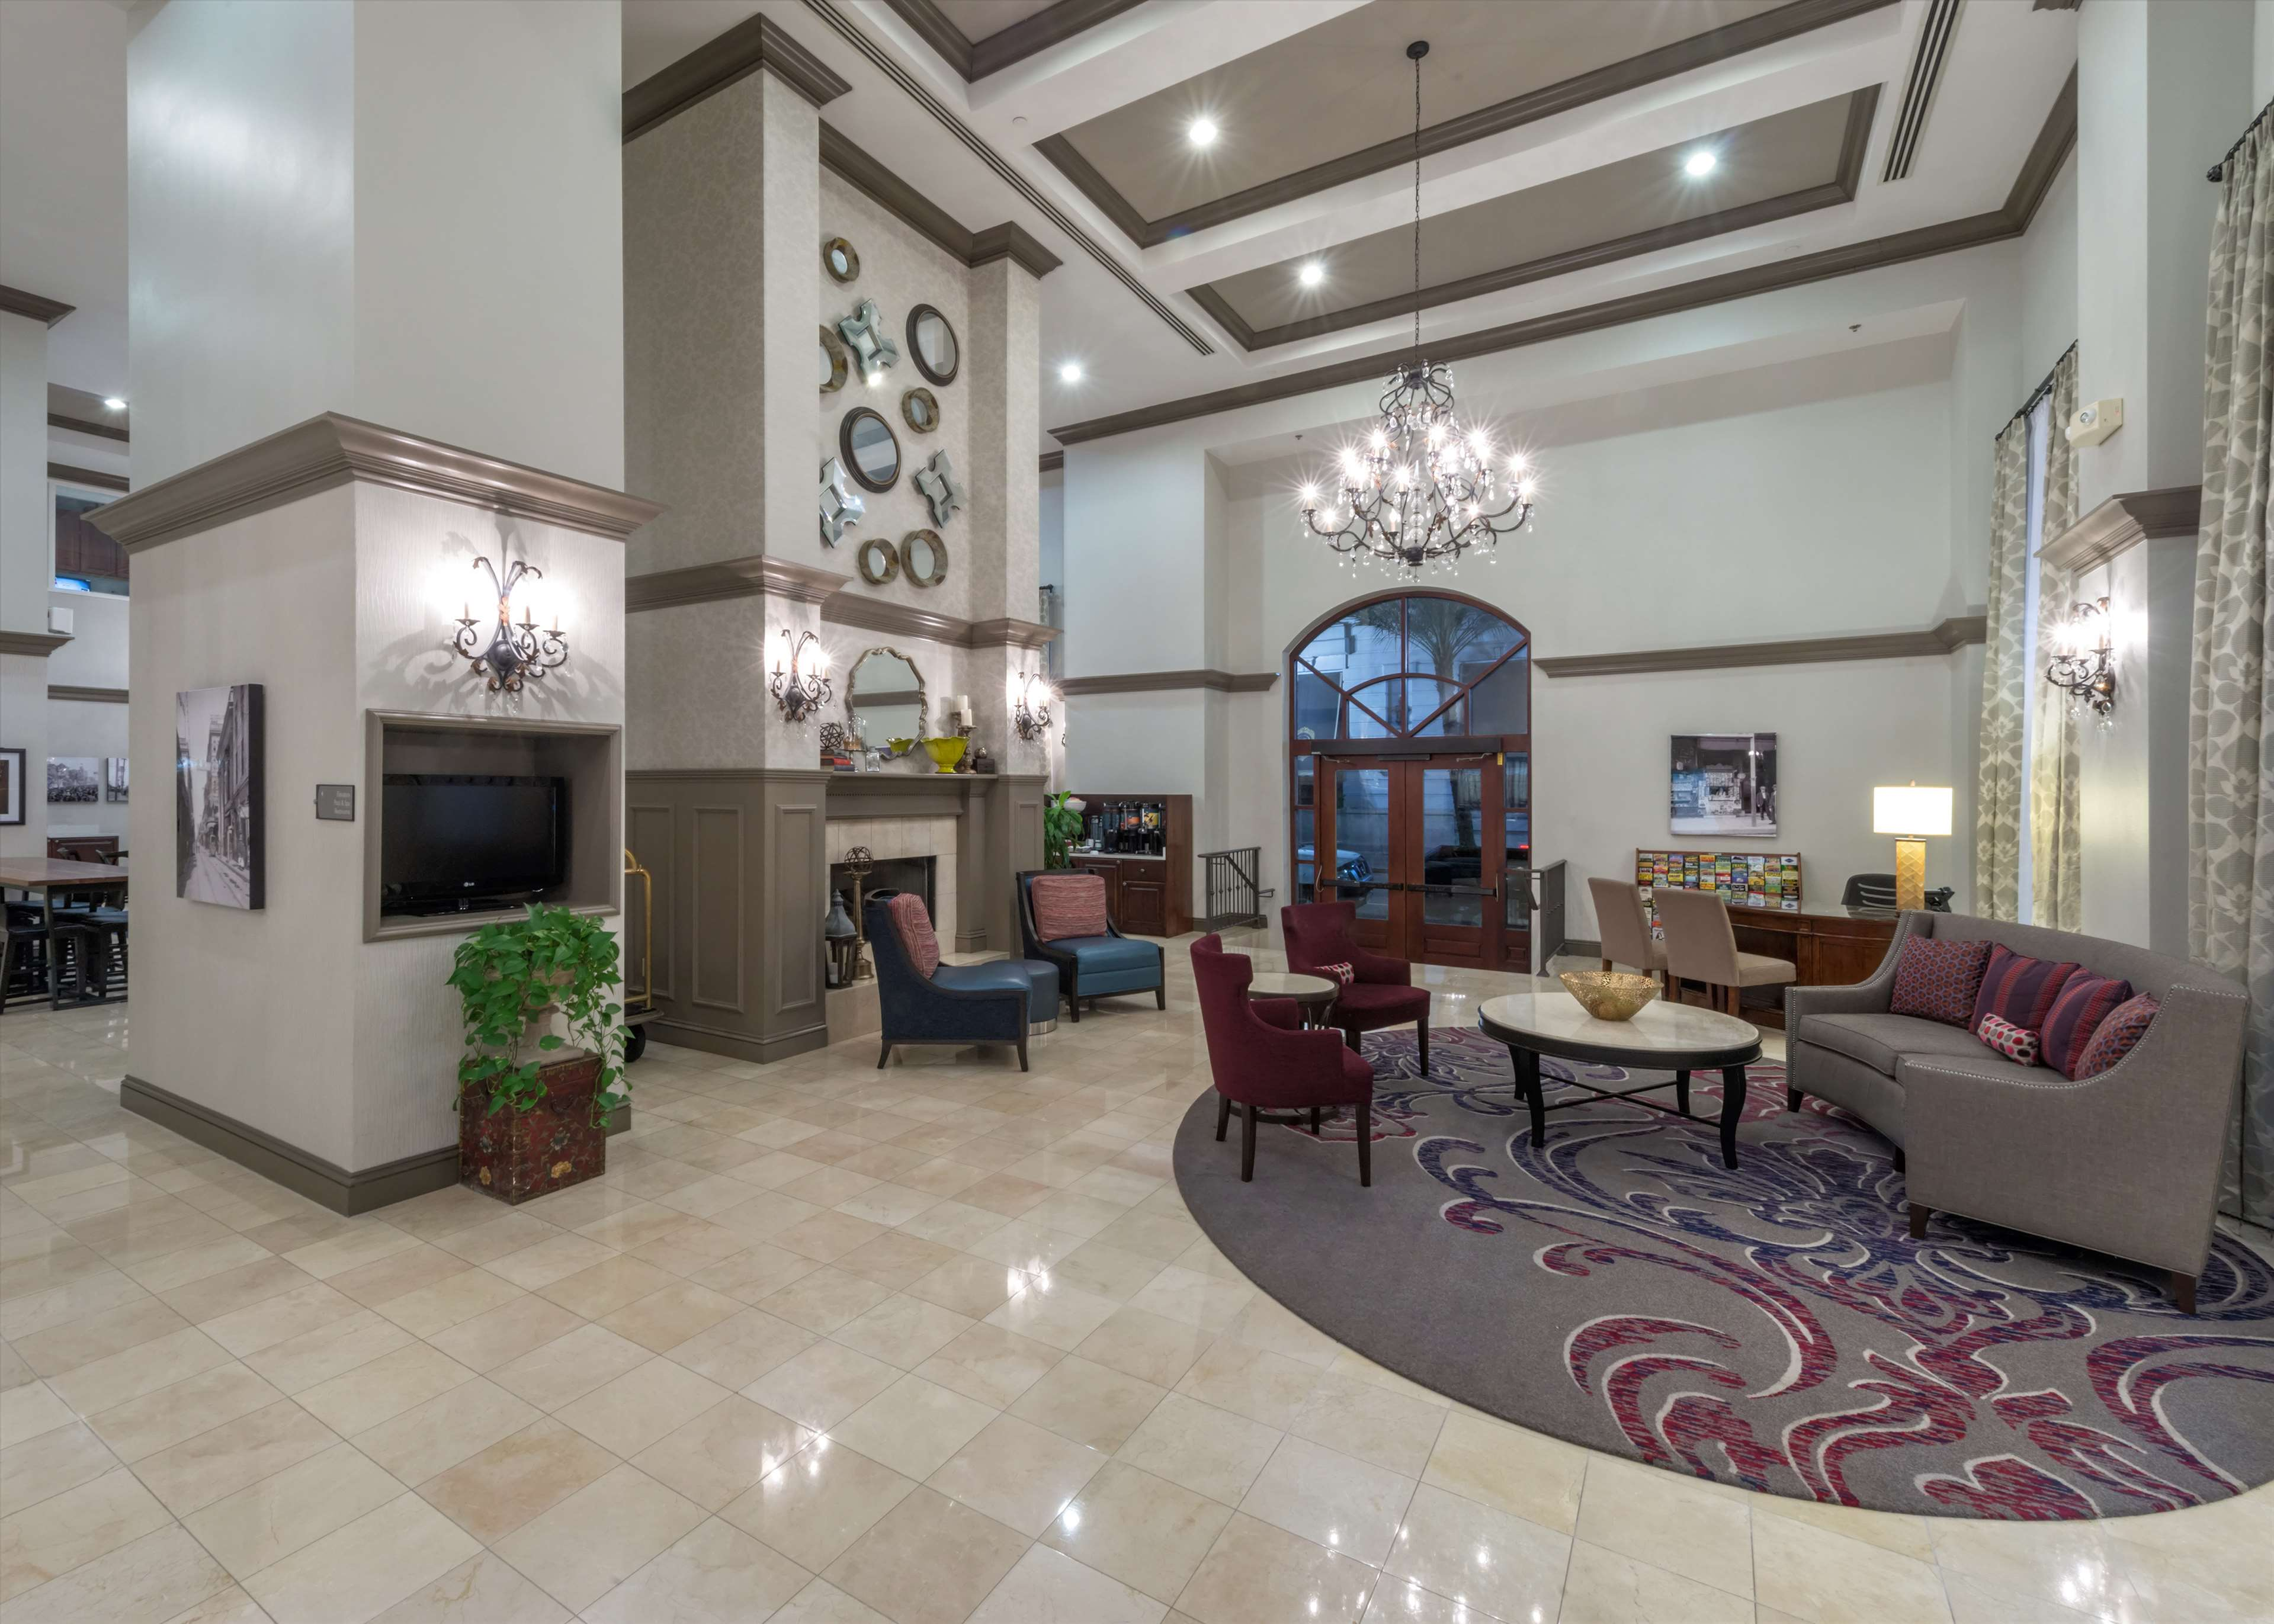 Homewood Suites by Hilton New Orleans image 4